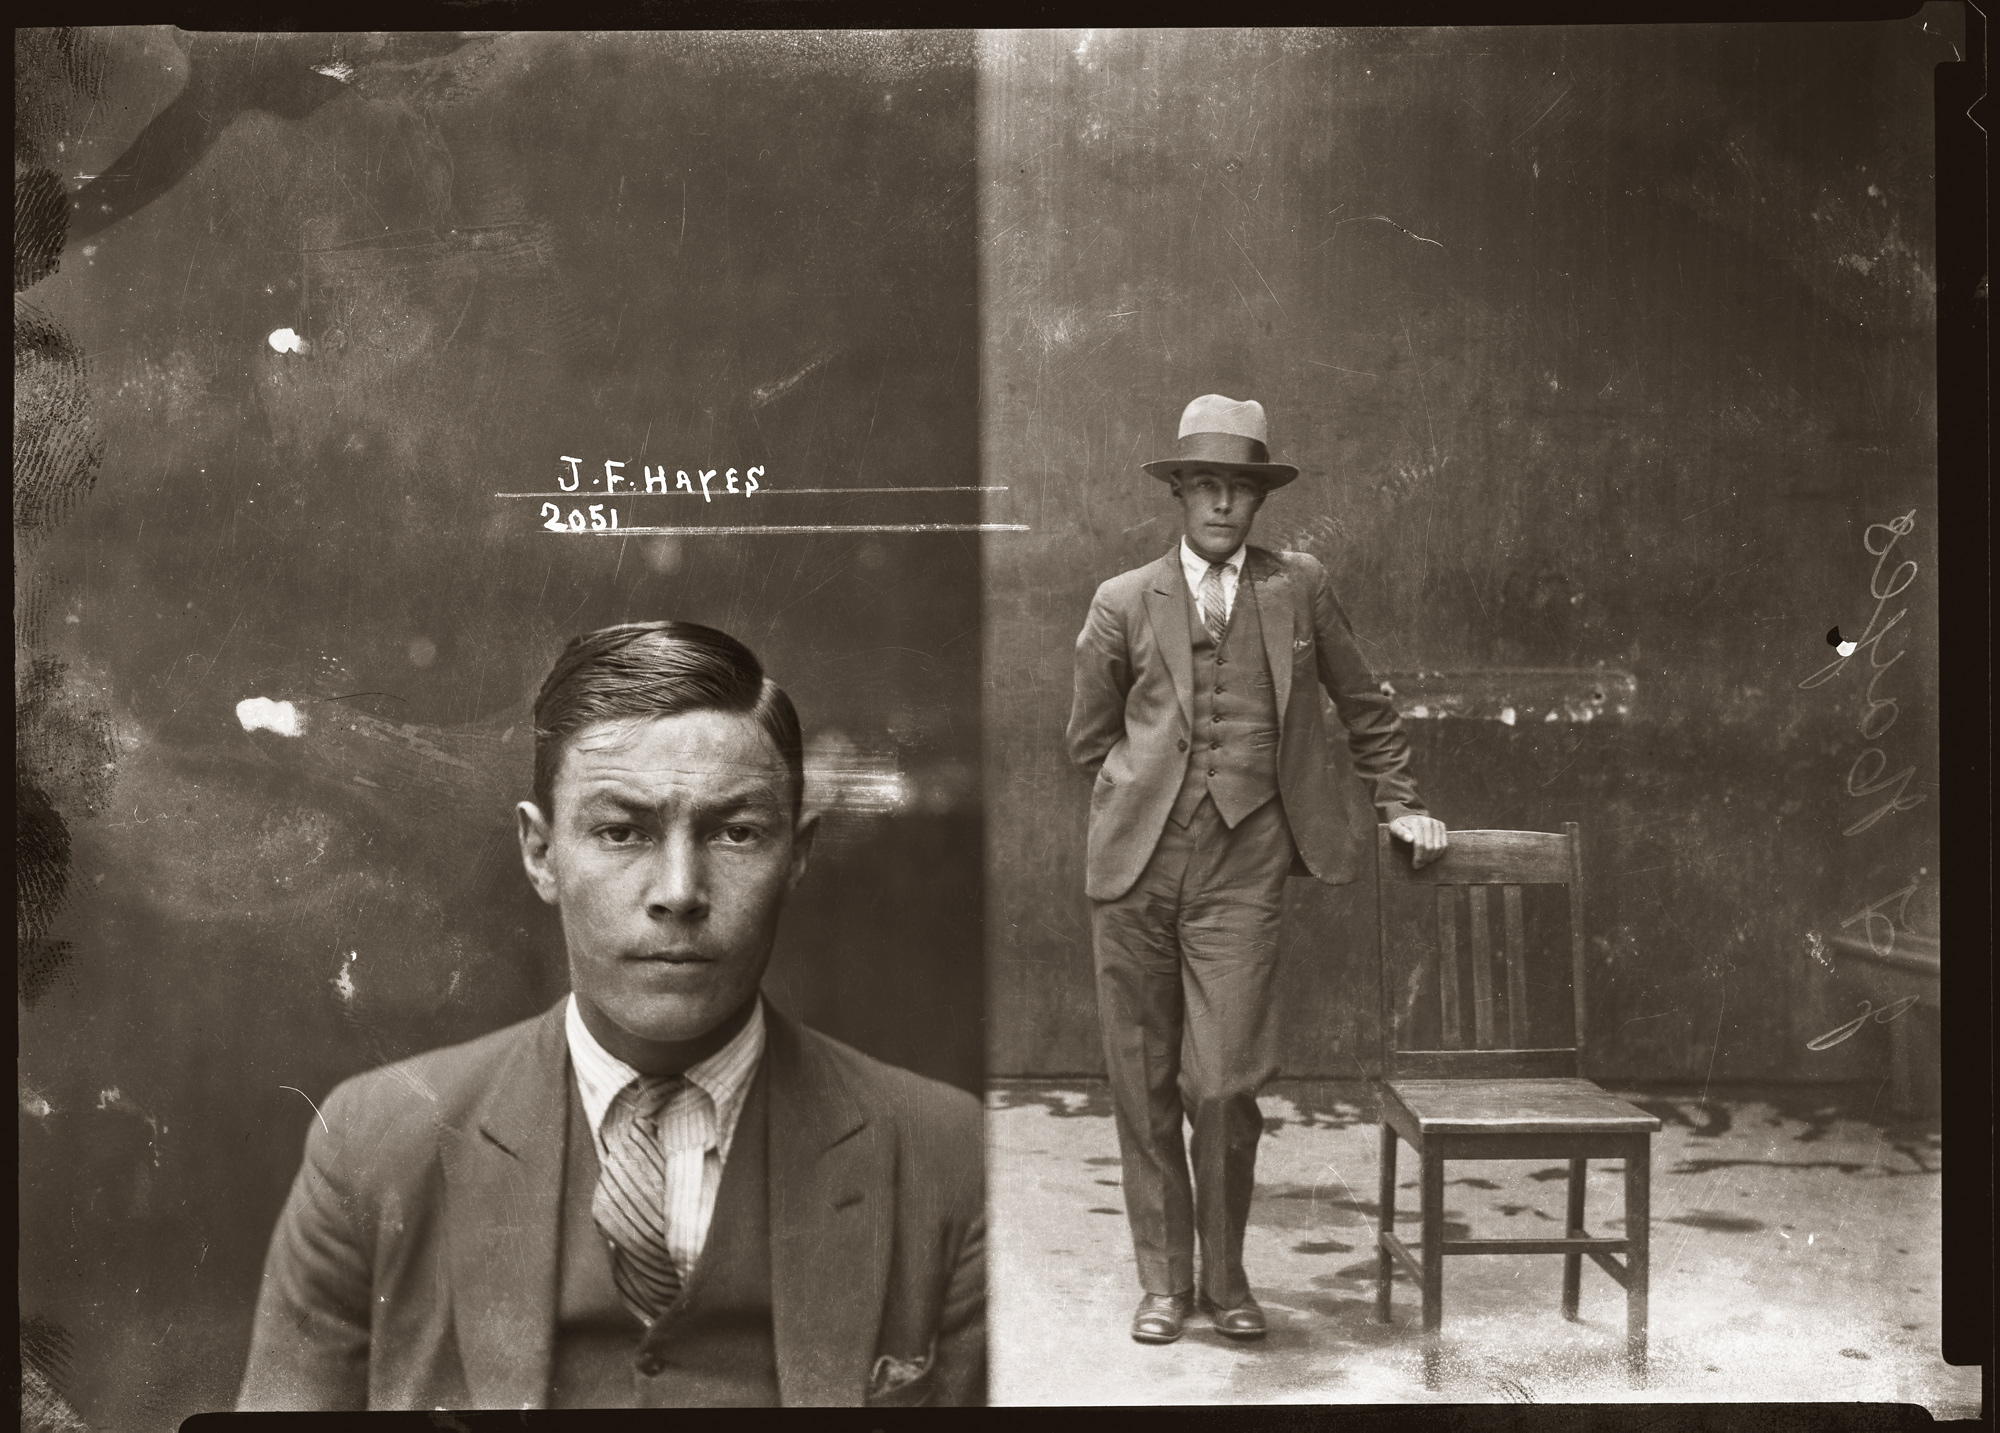 Black and white mugshot of man against wall, left hand side image closeup without hat, right hand side image full standing shot with hat on, leaning on chair.